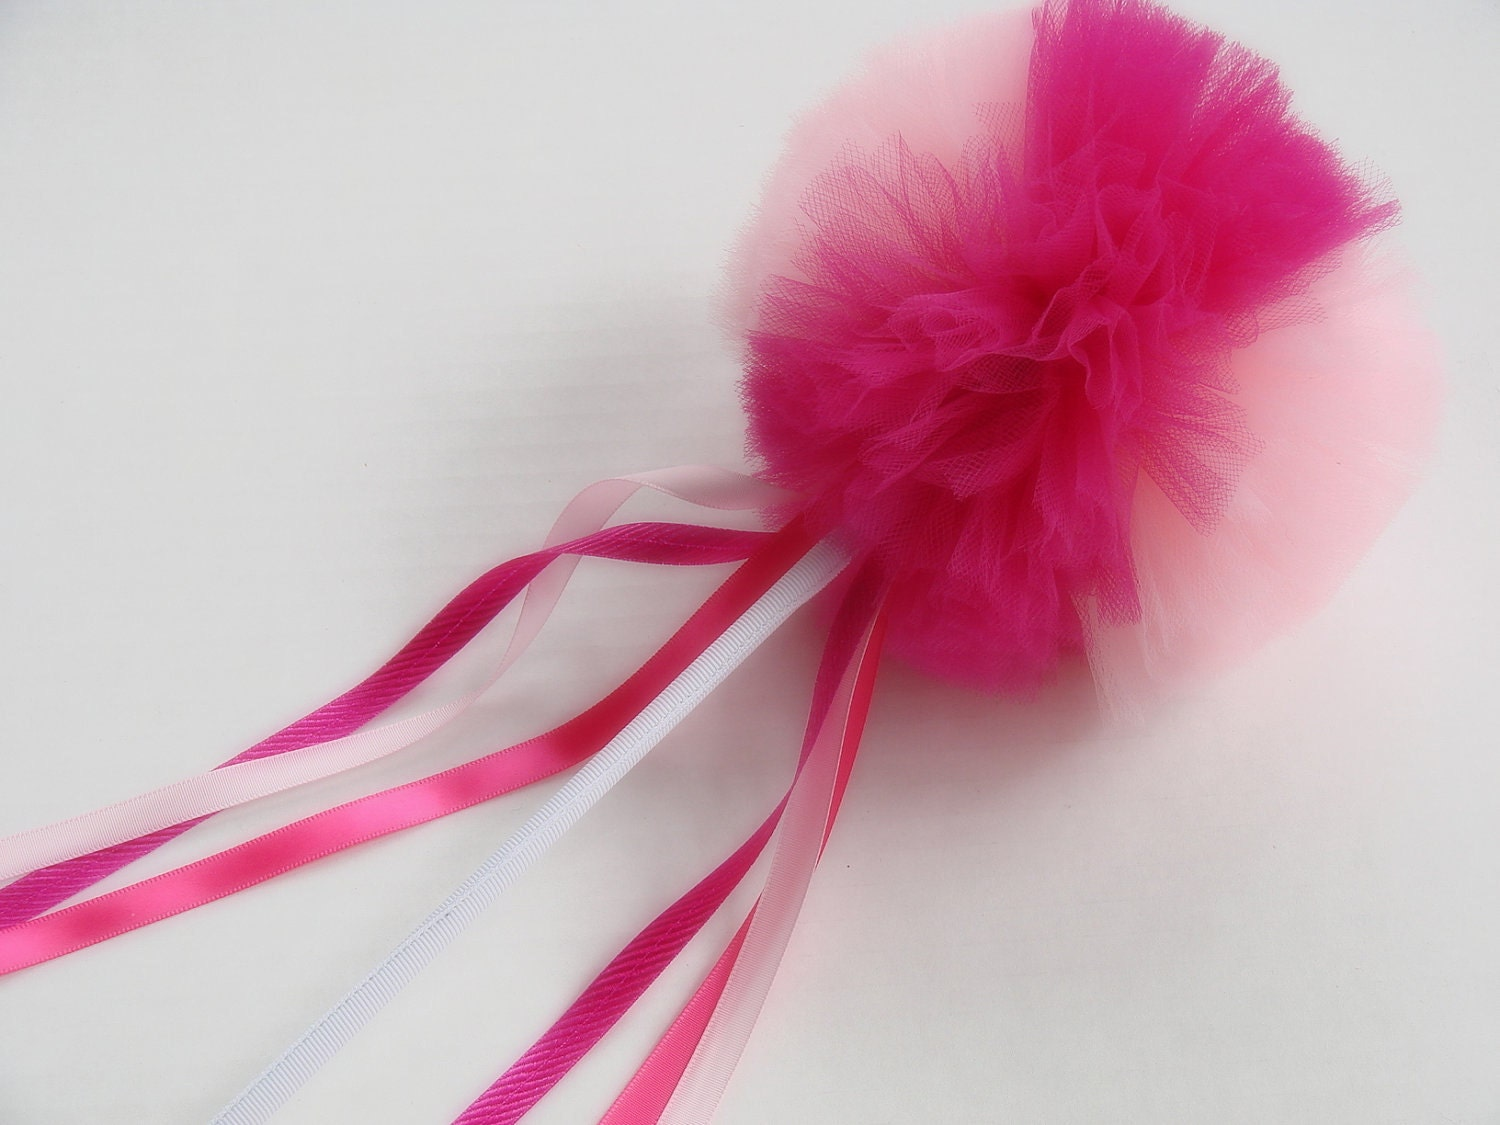 Fuschia Pink and Light Pink Whimsy Wishing Wand - whimsywendy